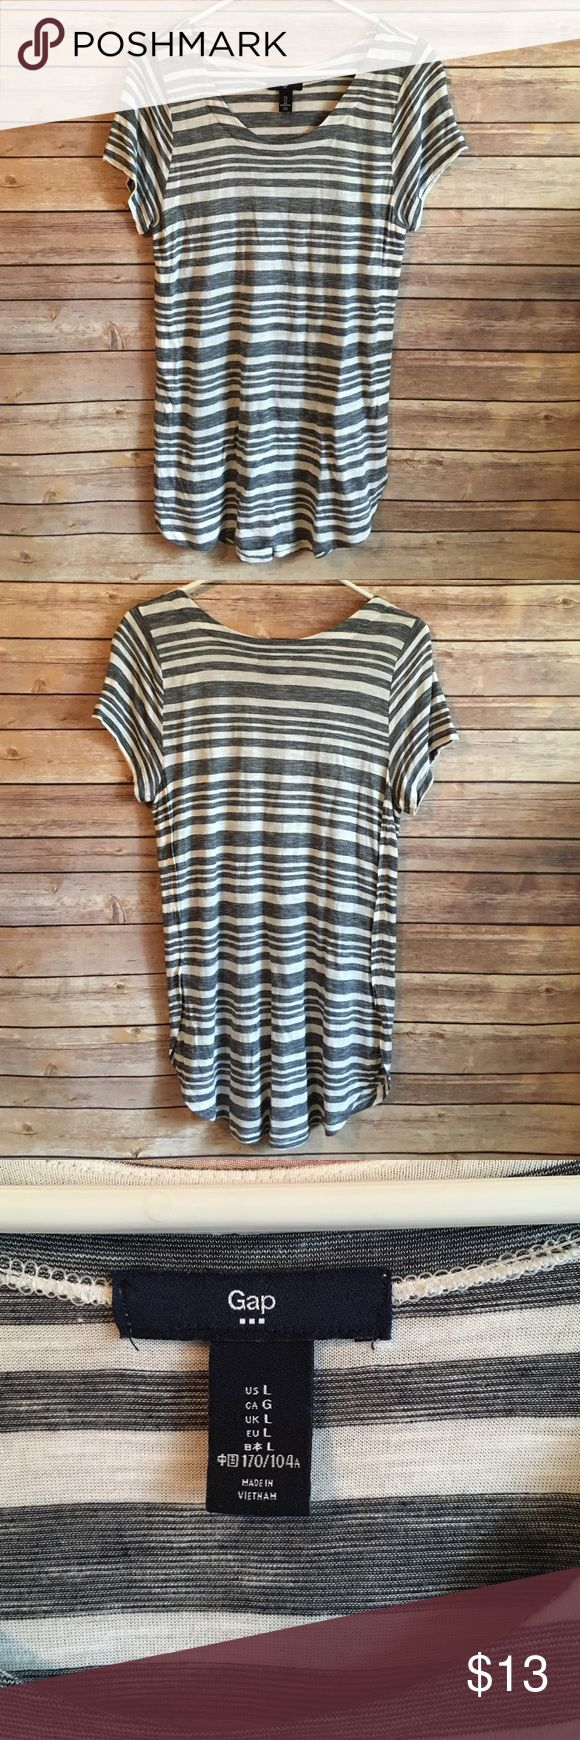 GAP Tee EUC. Blue and white top. Fits like XL and is longer than standard tees. GAP Tops Tees - Short Sleeve